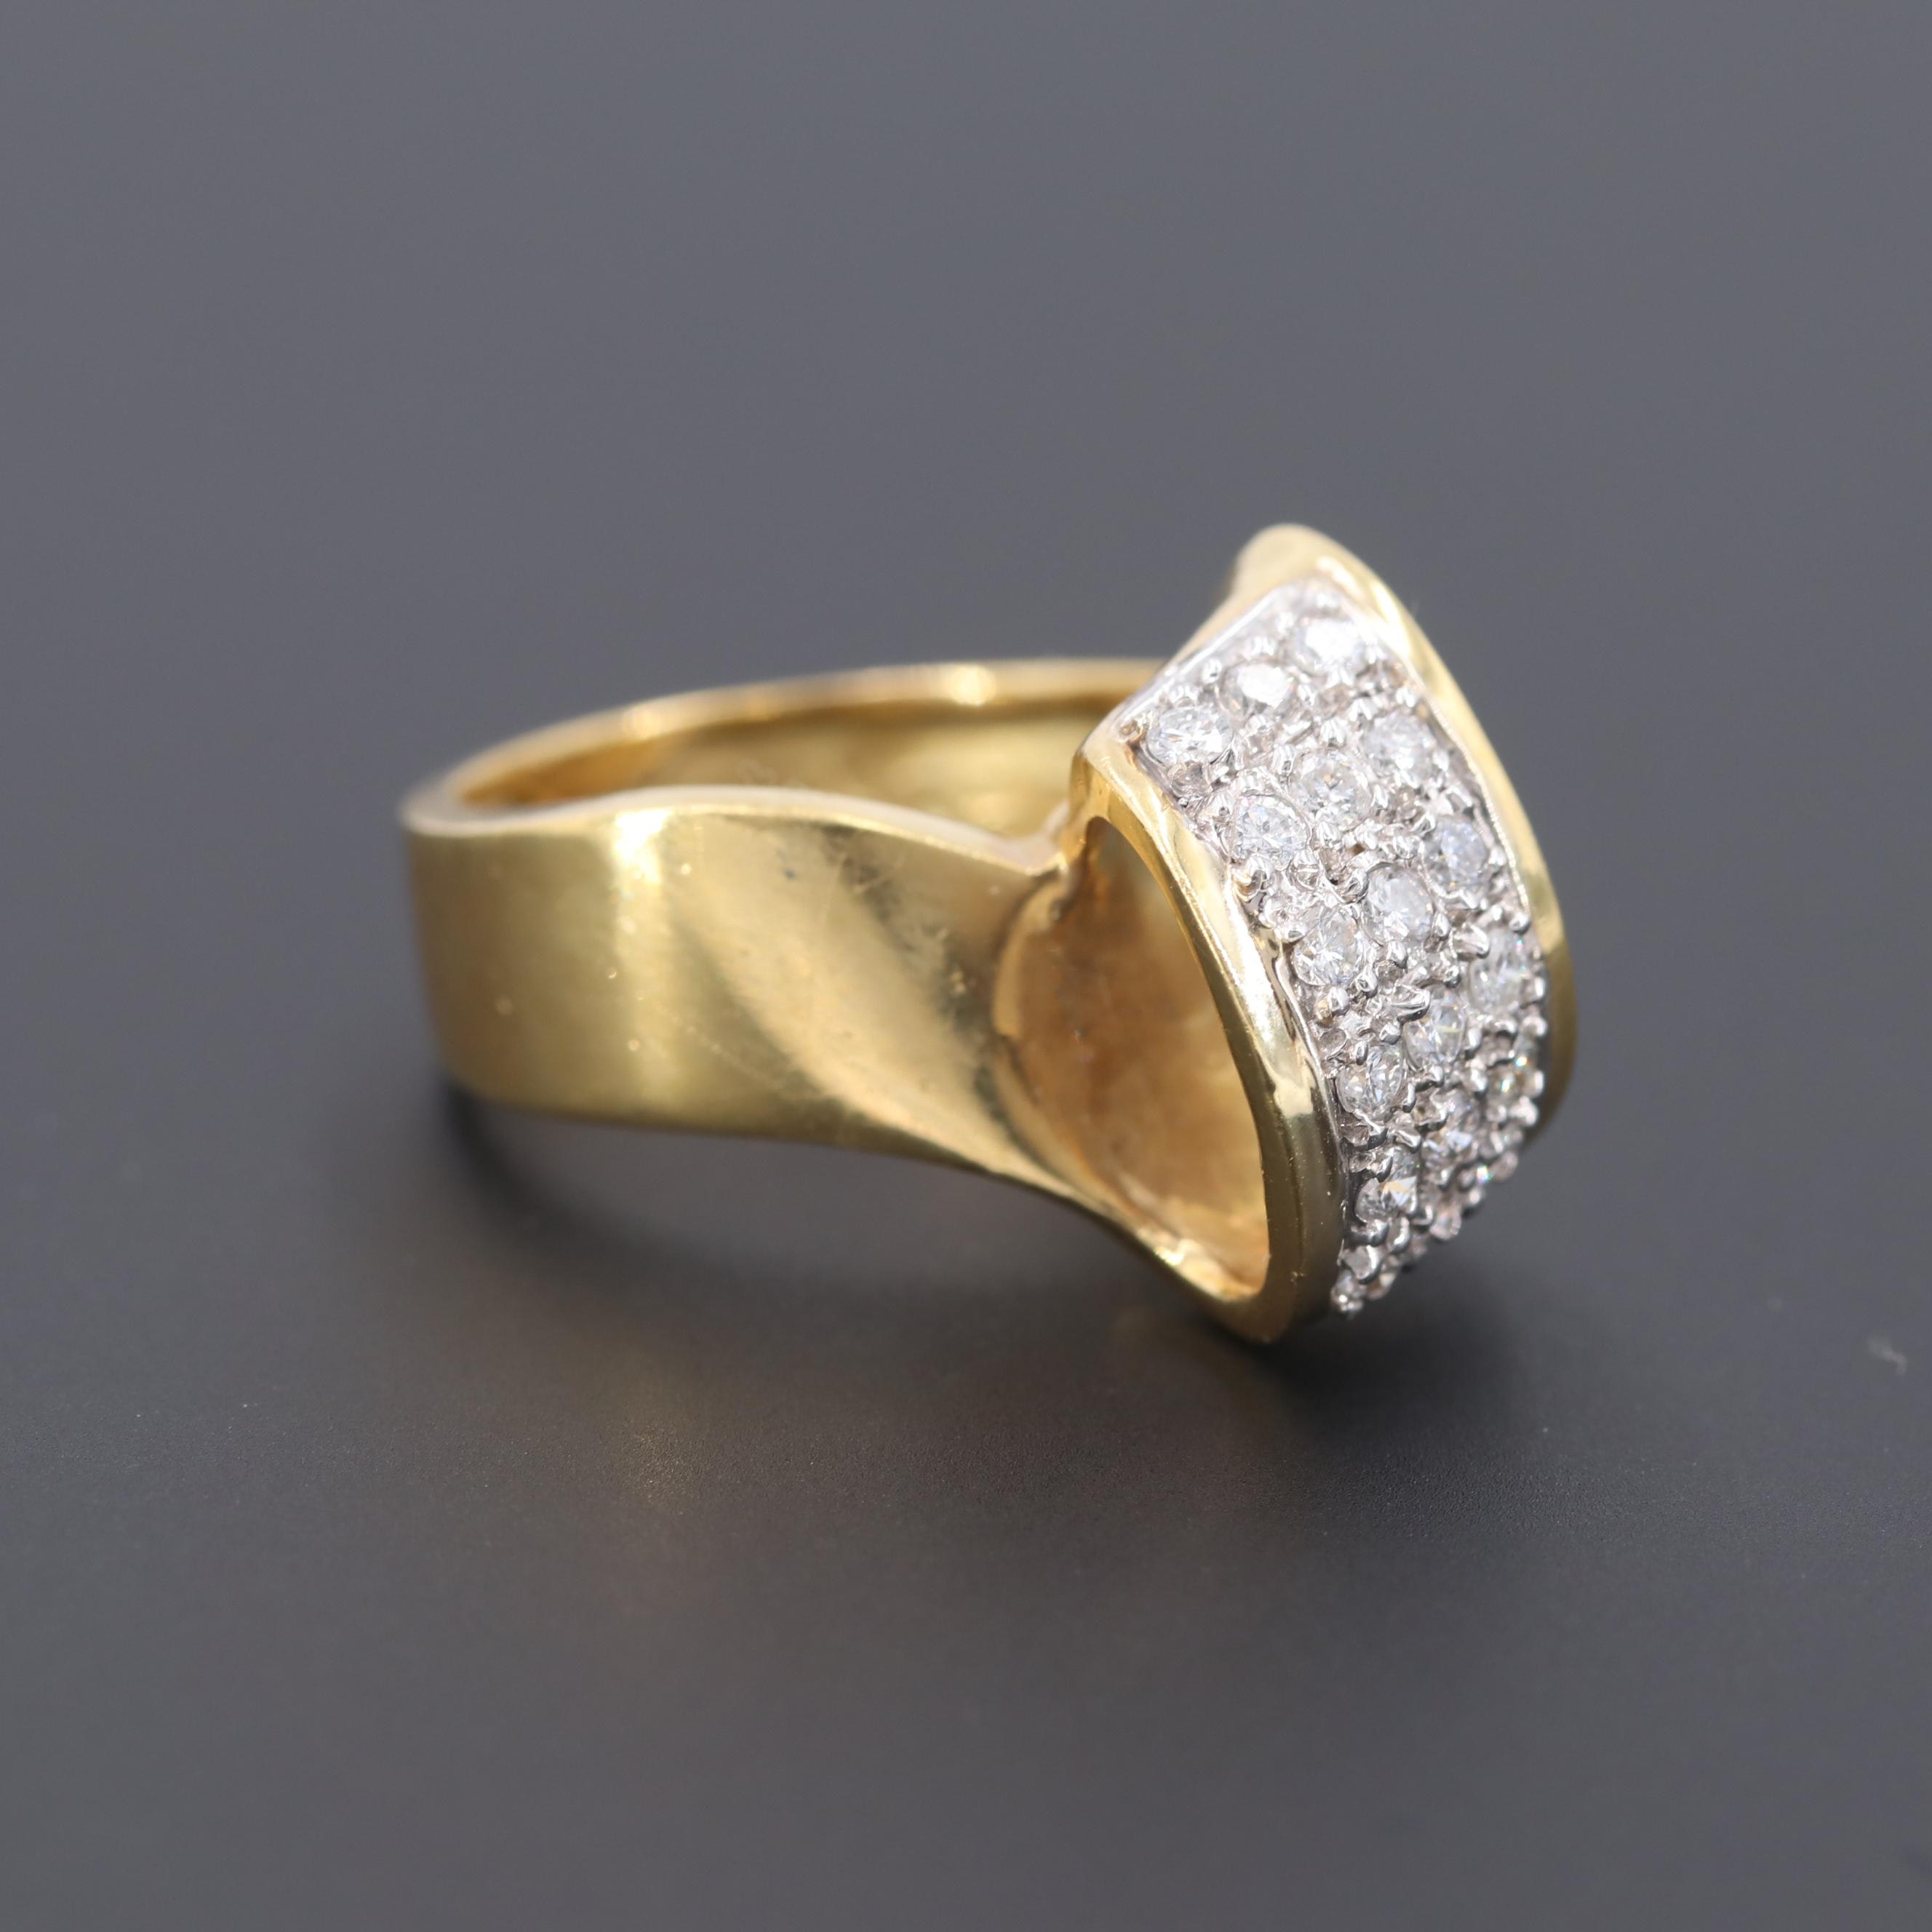 18K Yellow Gold Diamond Ring with 14K White Gold Setting